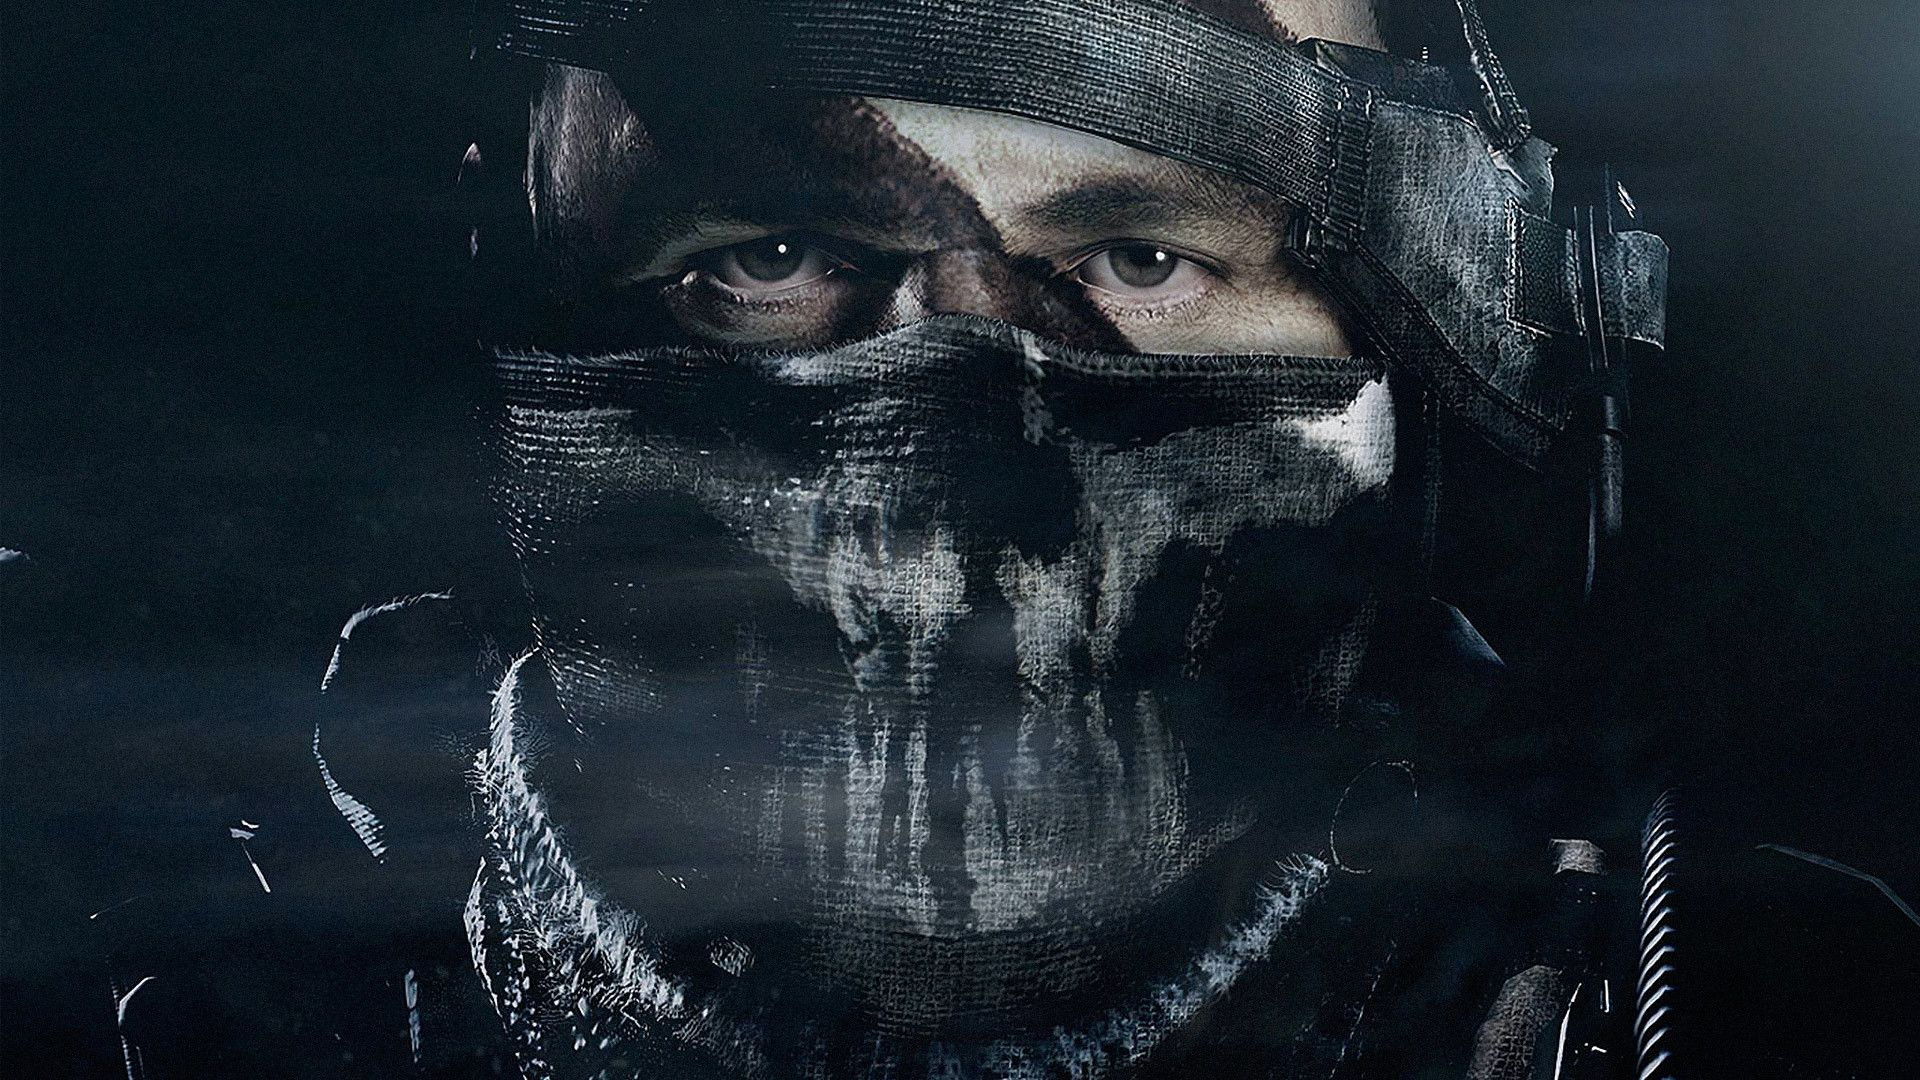 Call Of Duty Ghosts Game HD Wallpaper [1920x1080] Need